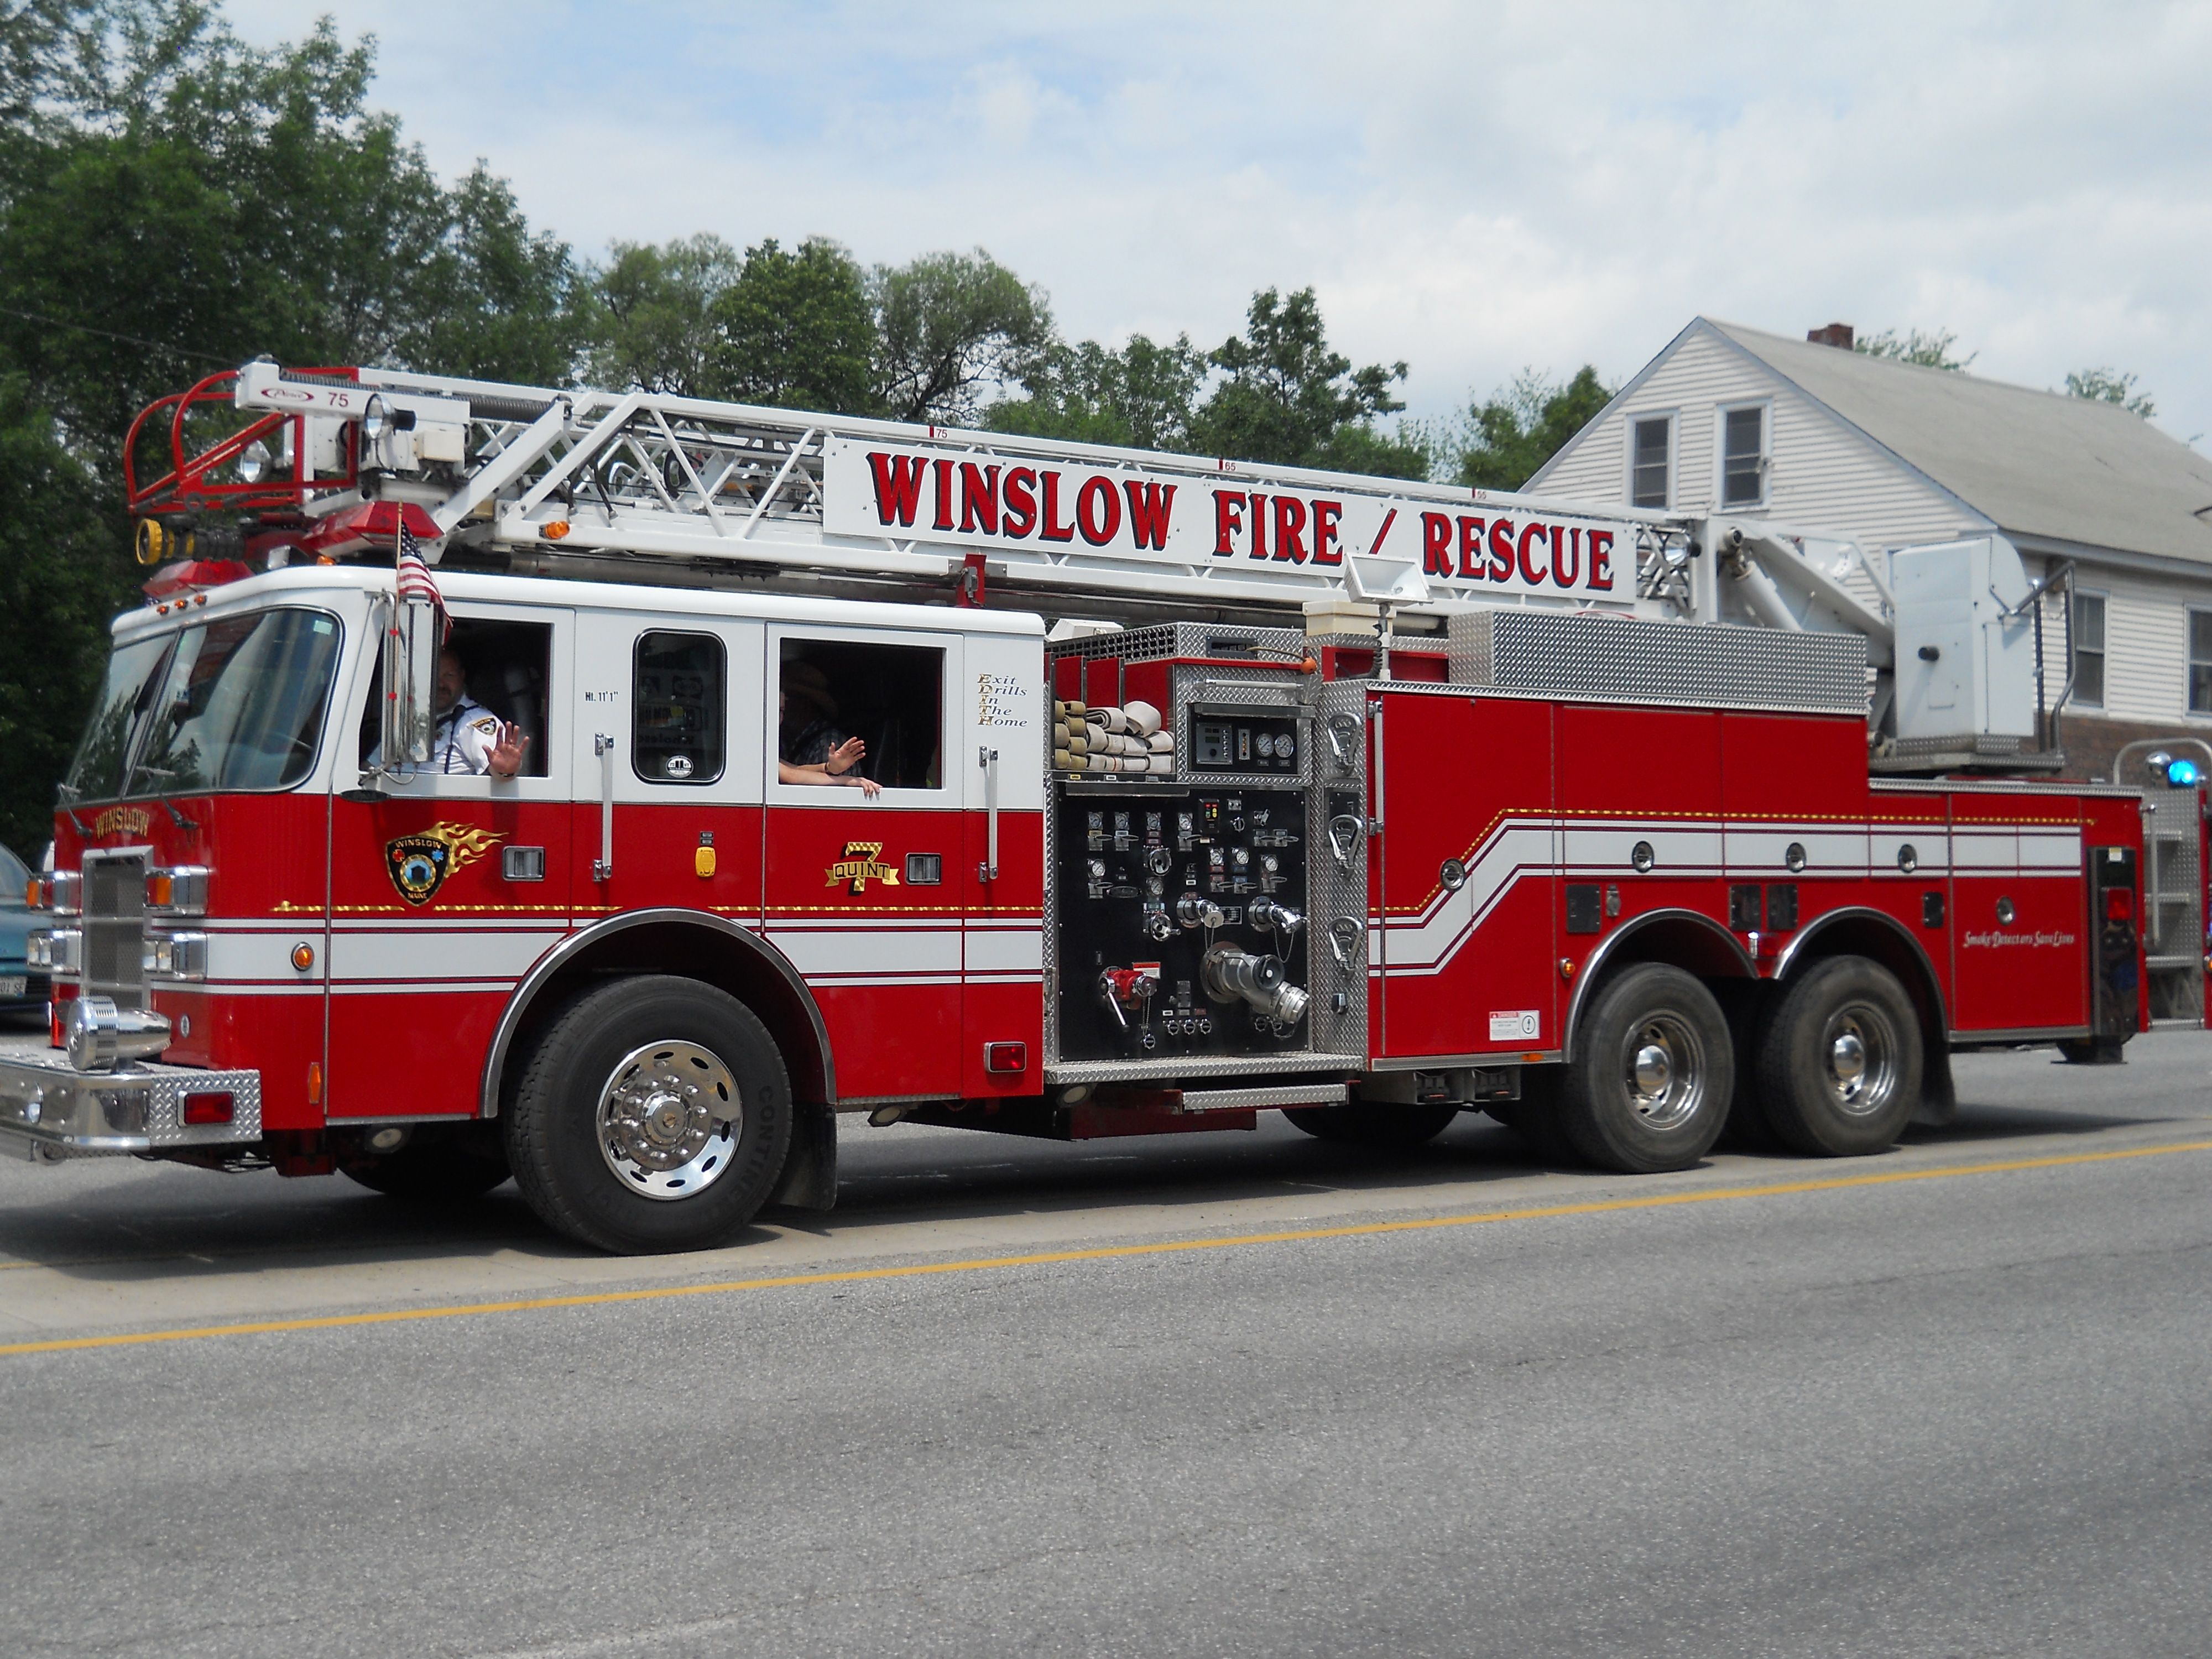 Winslow fire rescue truck practice drills in the home